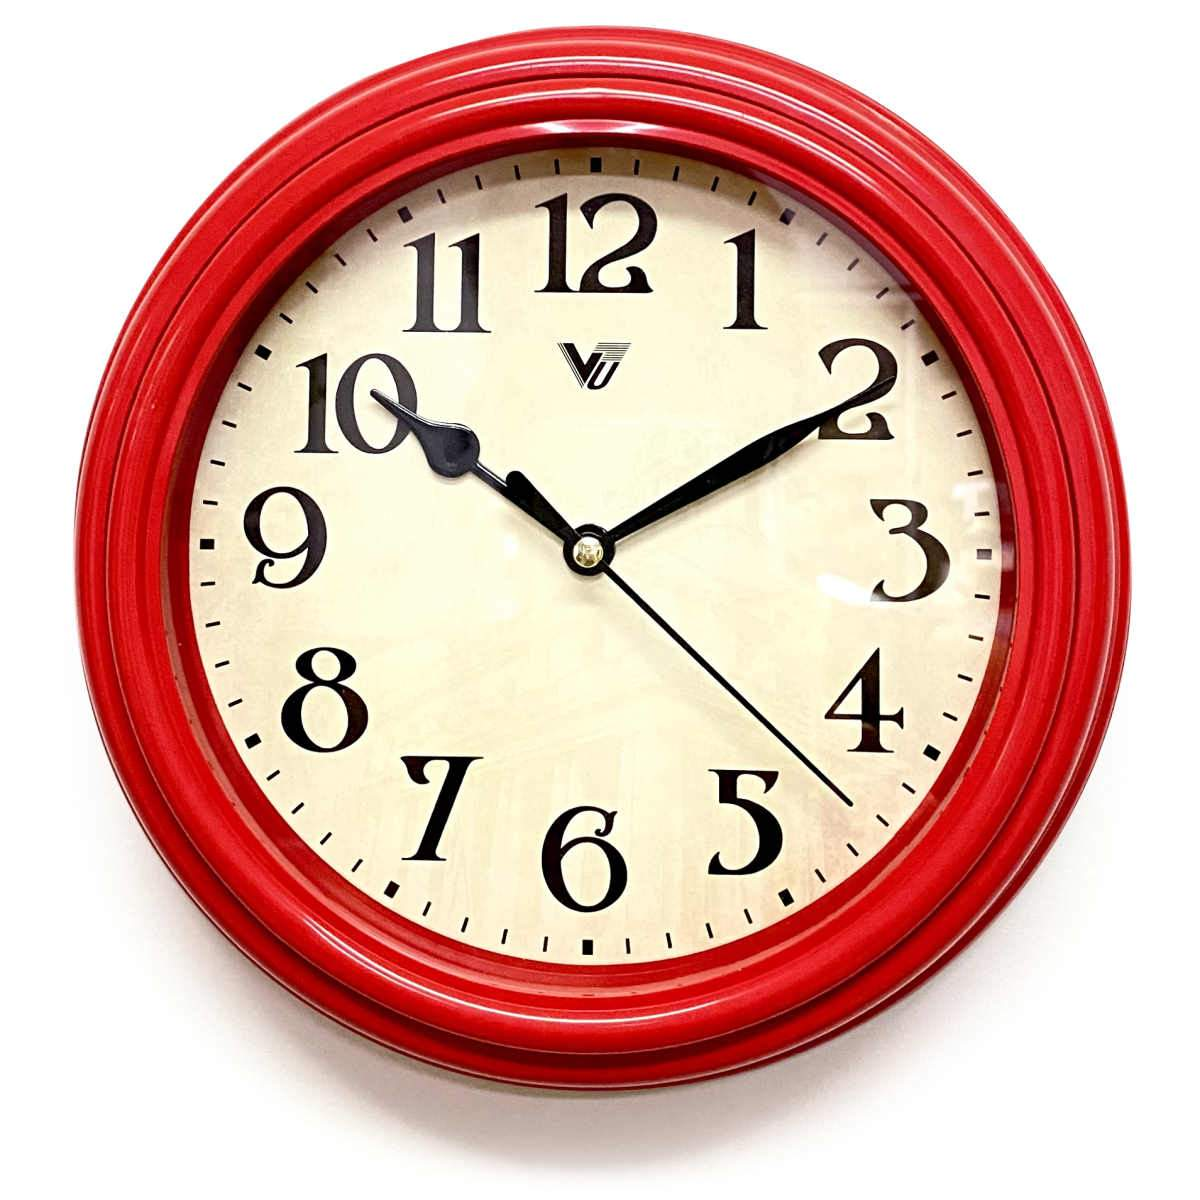 Victory Leila Vintage Print Wall Clock Red 22cm CJH-5155-RED 1